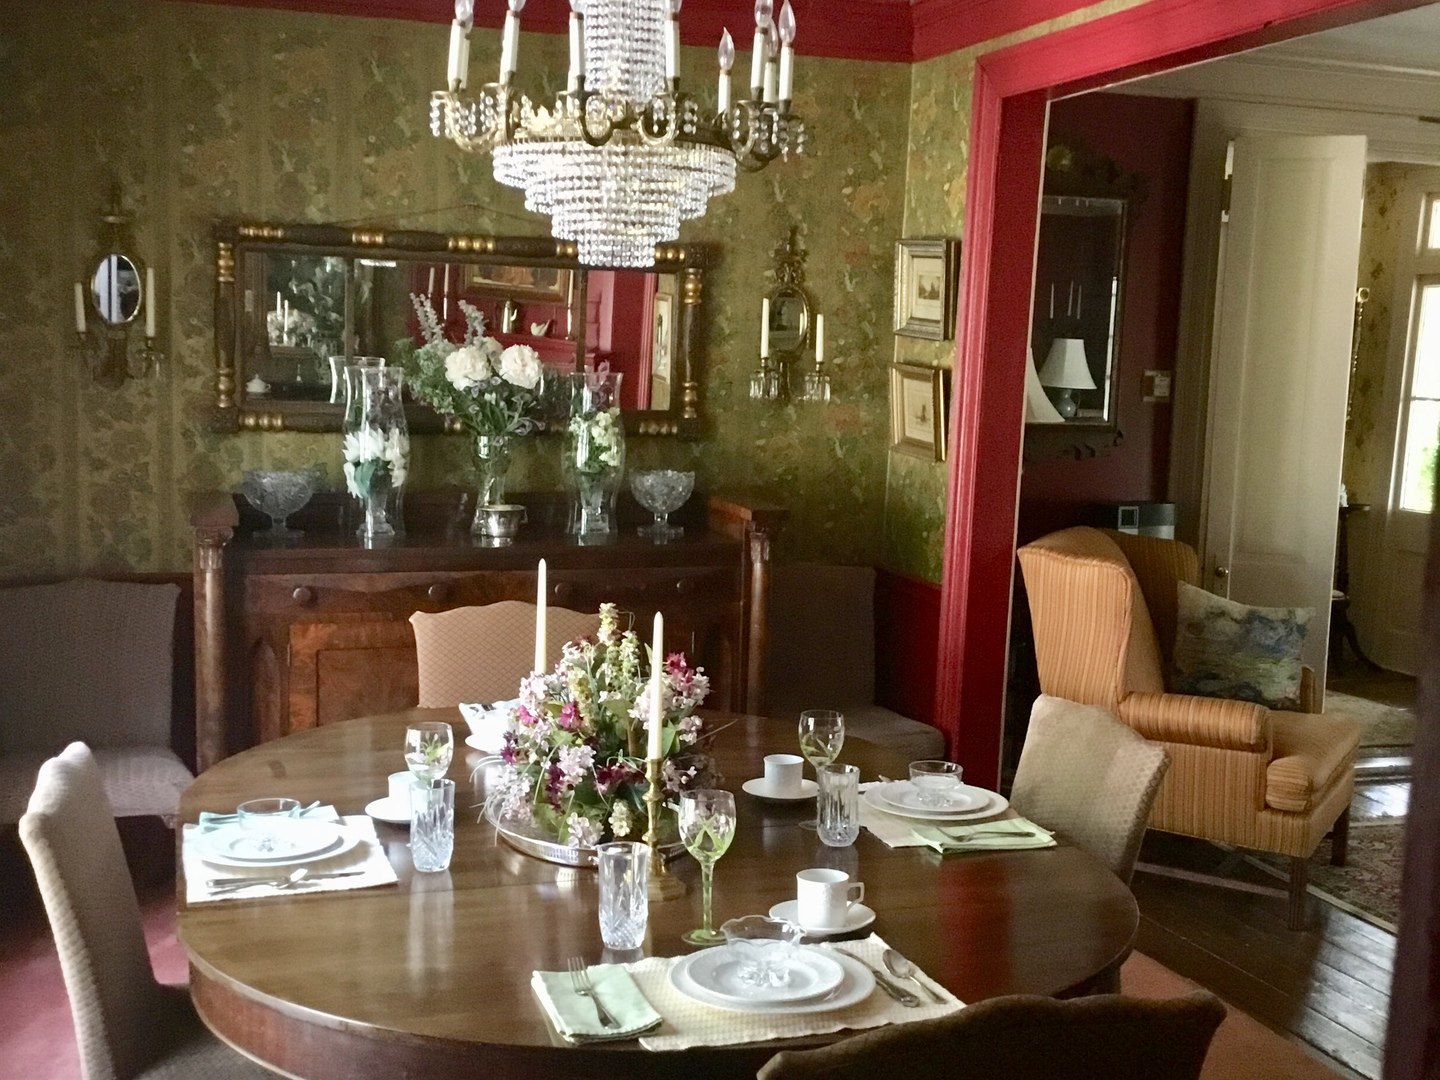 A dining room filled with furniture and vase of flowers on a table at The Governor's Bed and Breakfast.